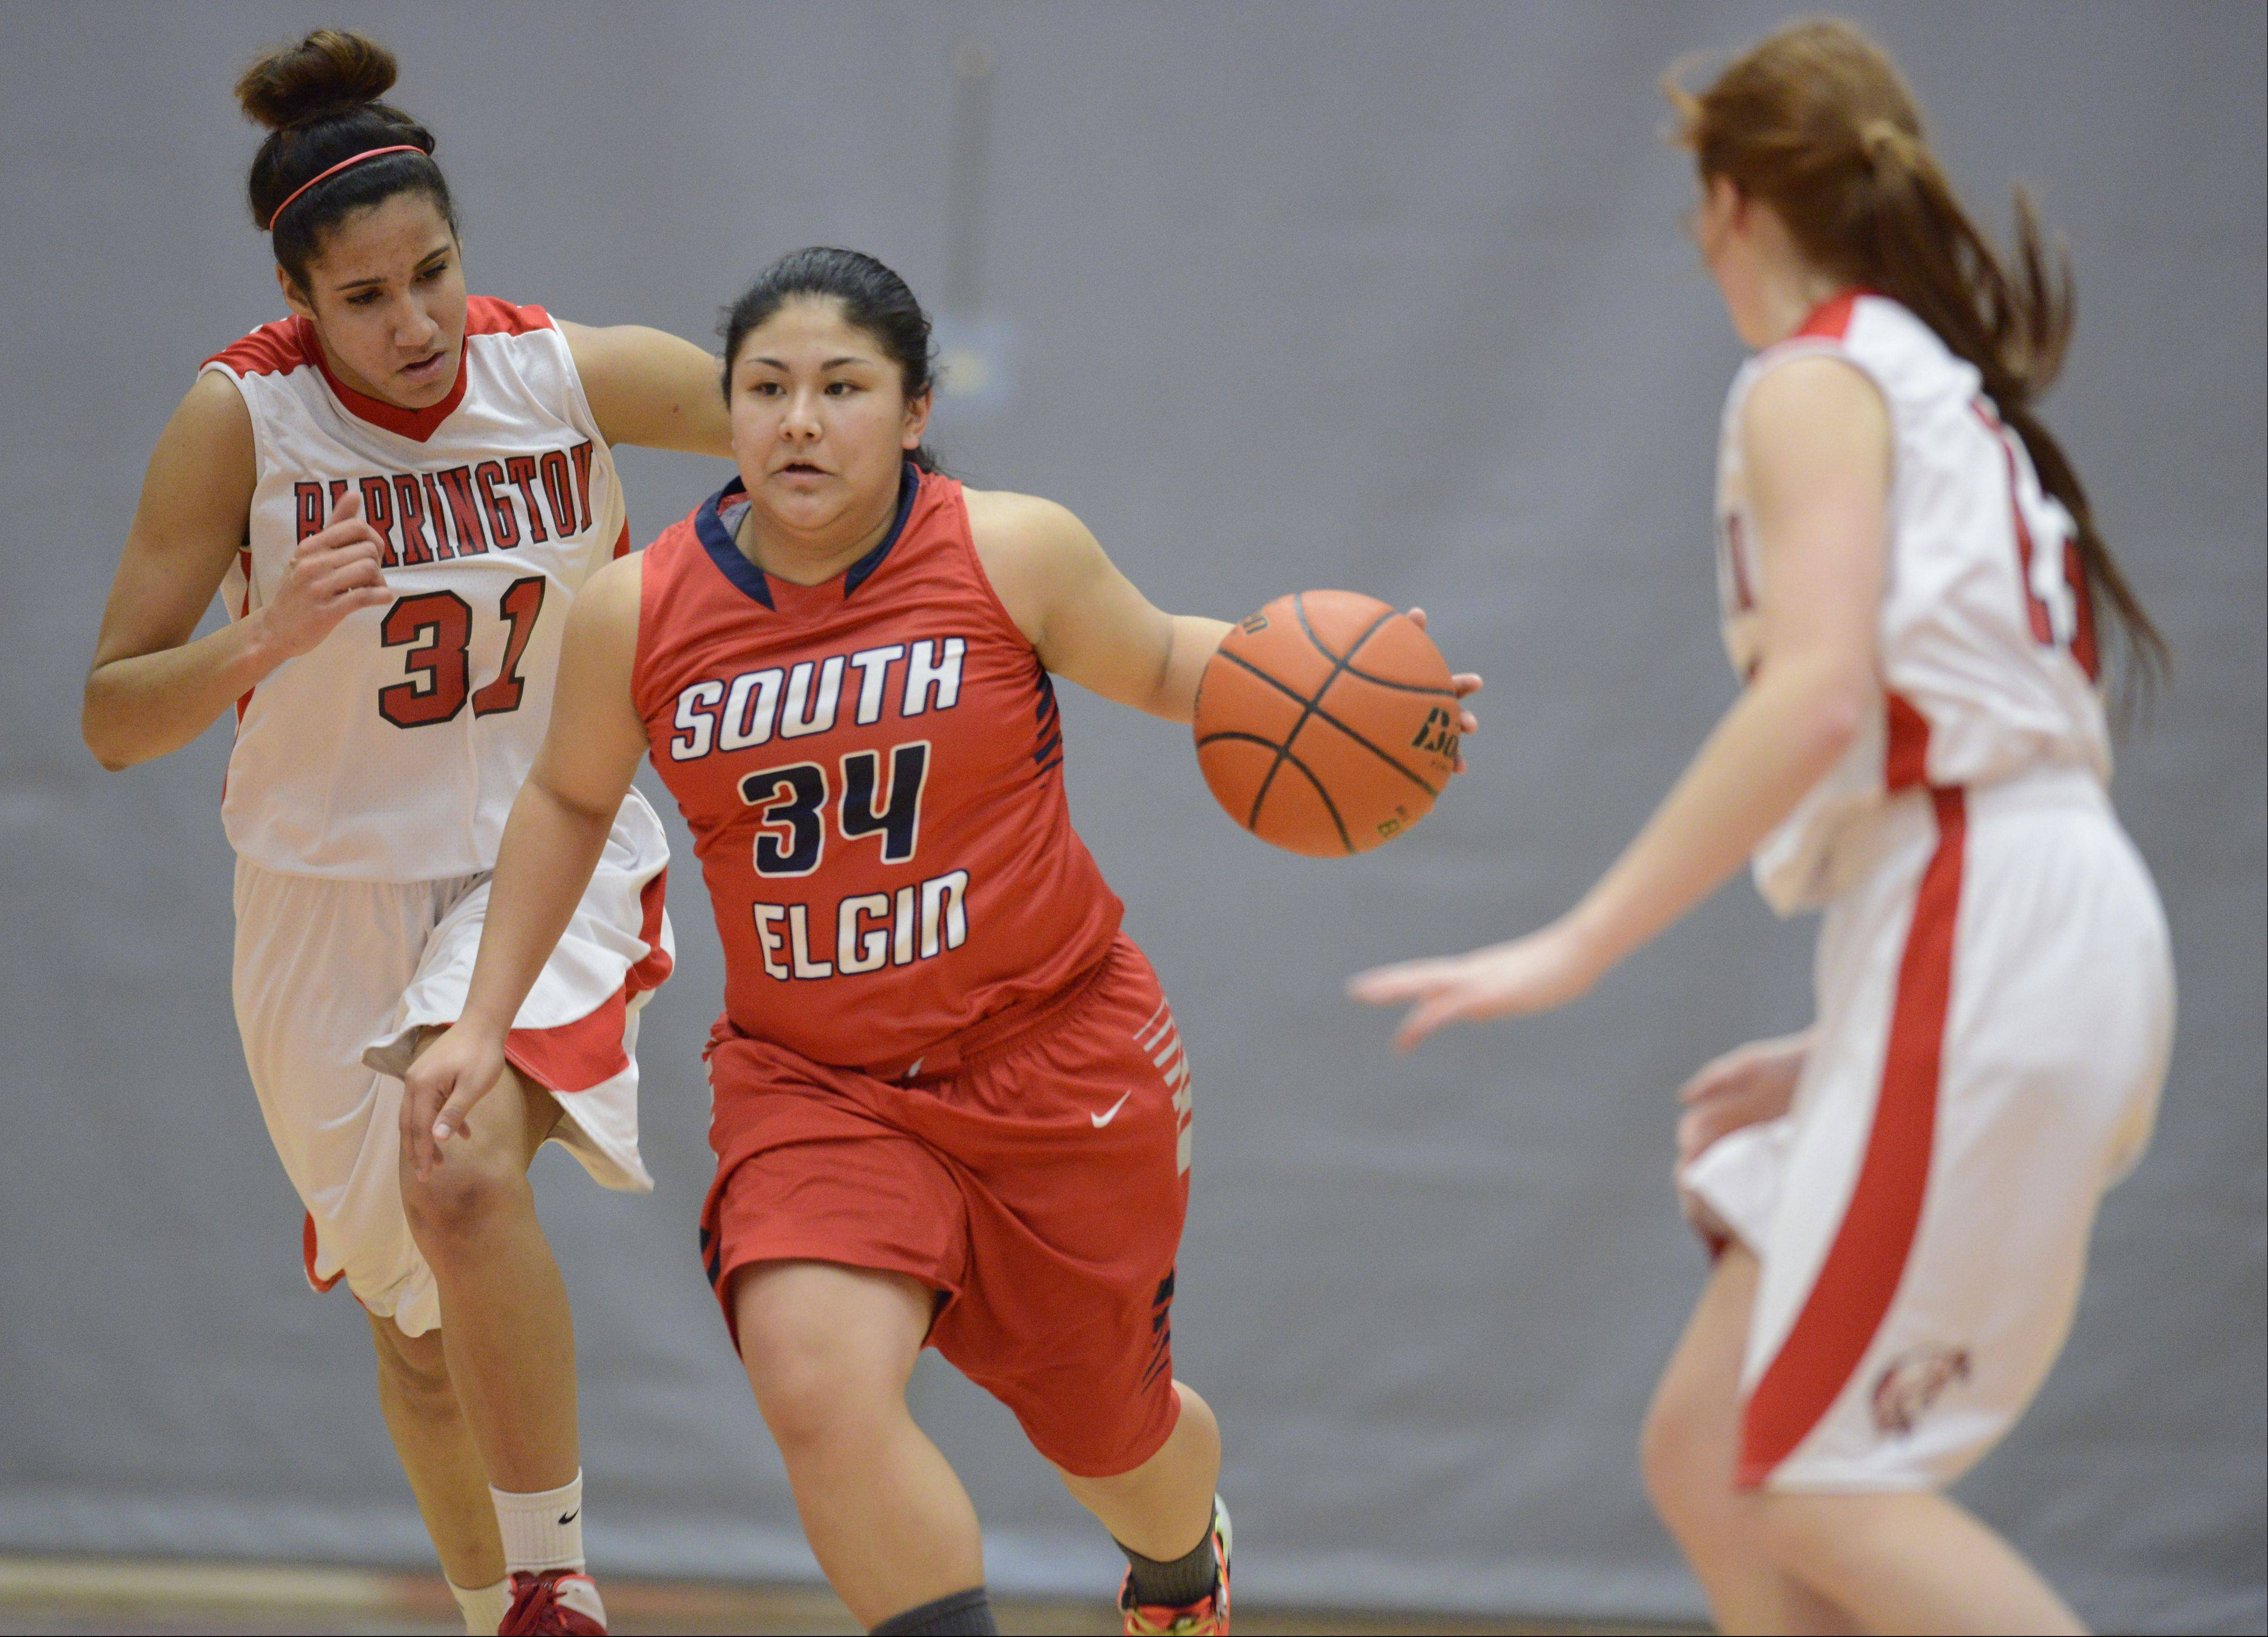 Images: Barrington vs. South Elgin girls basketball